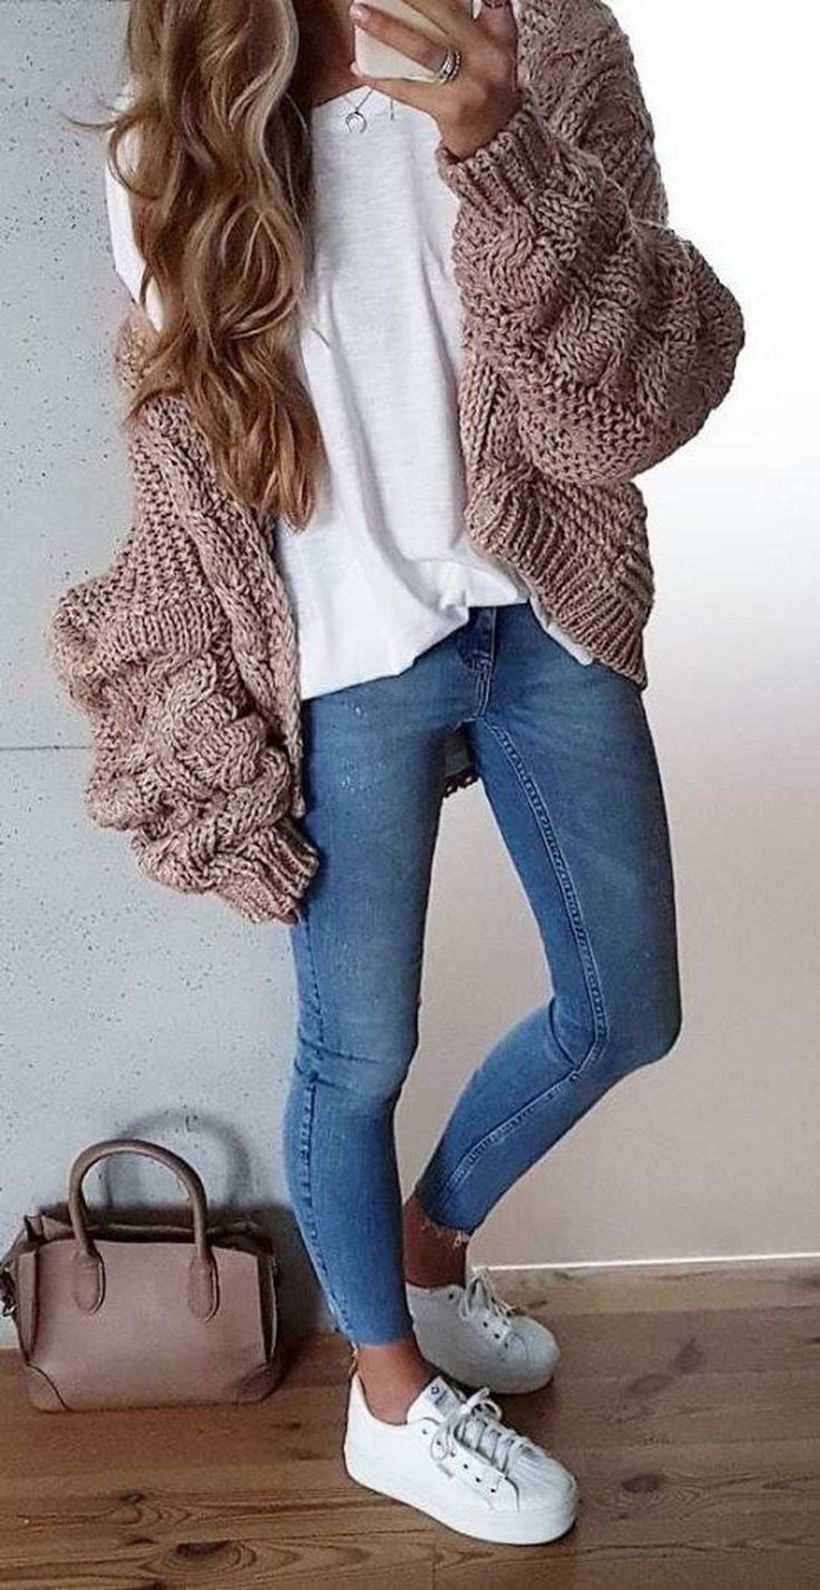 59 Pretty Fall Outfits Trends for Teenage Girls